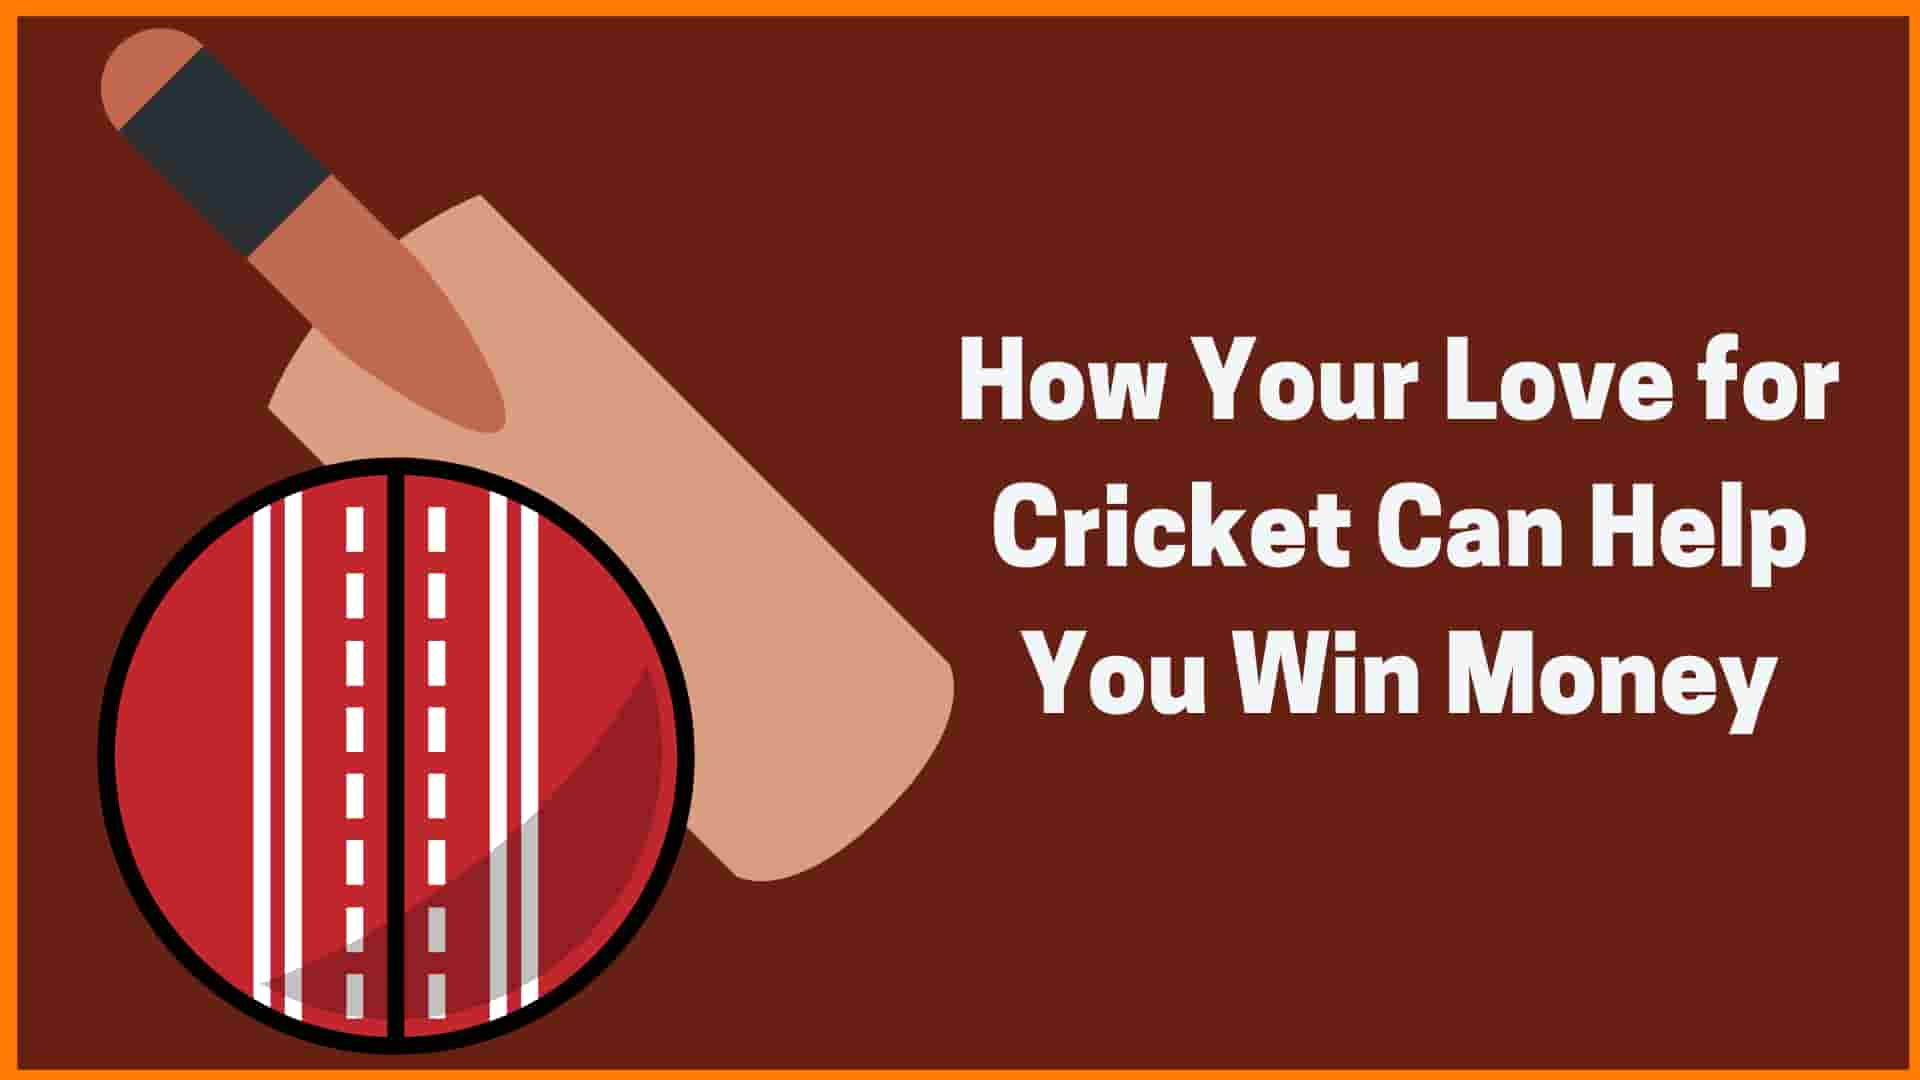 How Your Love for Cricket Can Help You Win Money